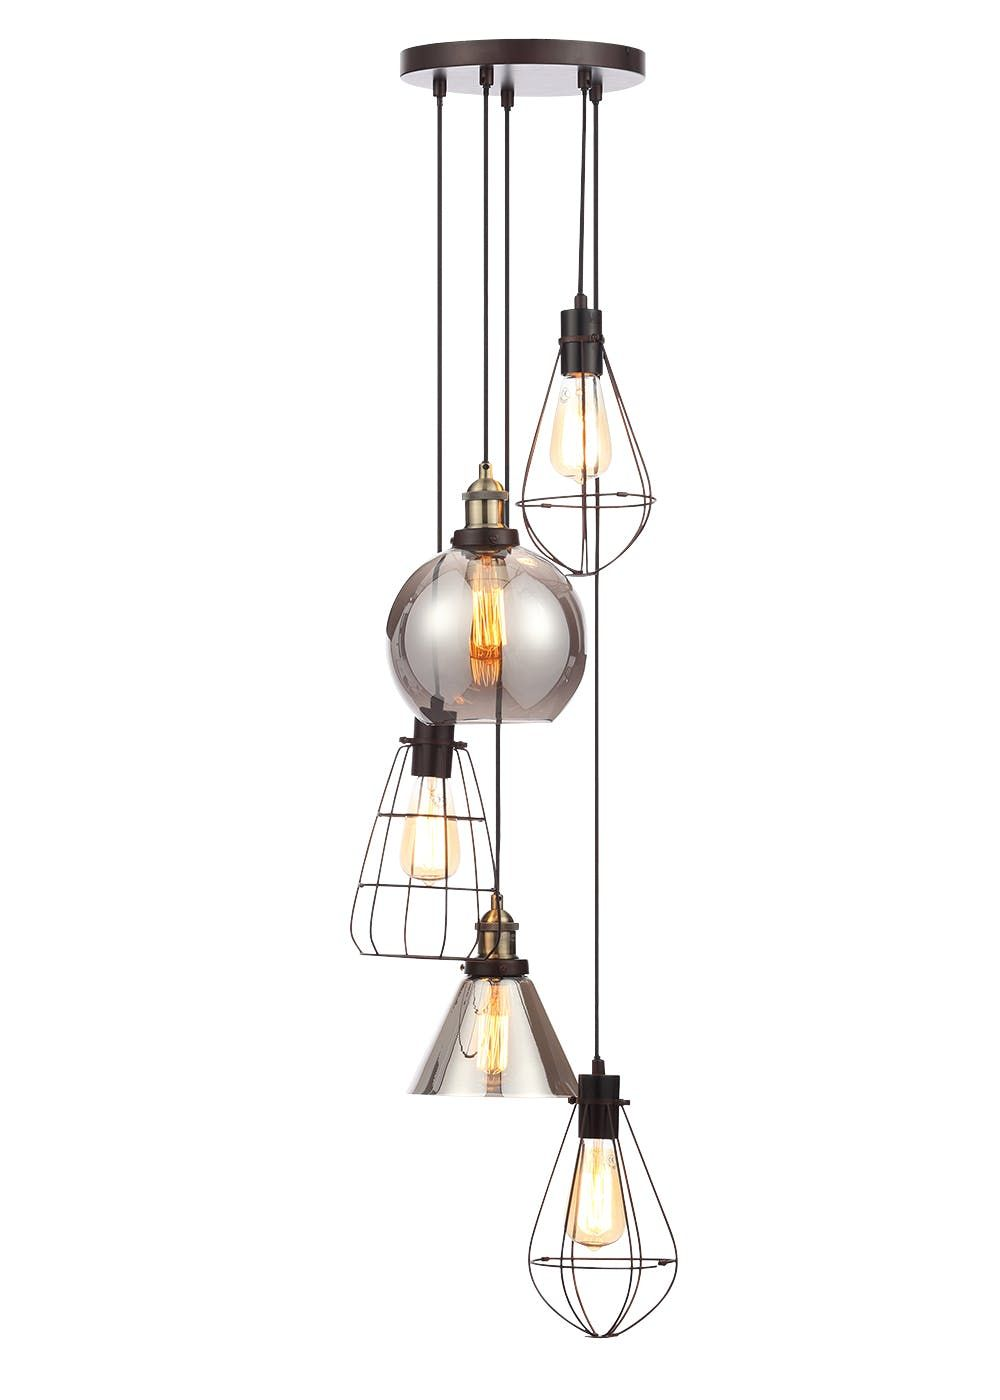 industrial cluster pendant lighting # 3